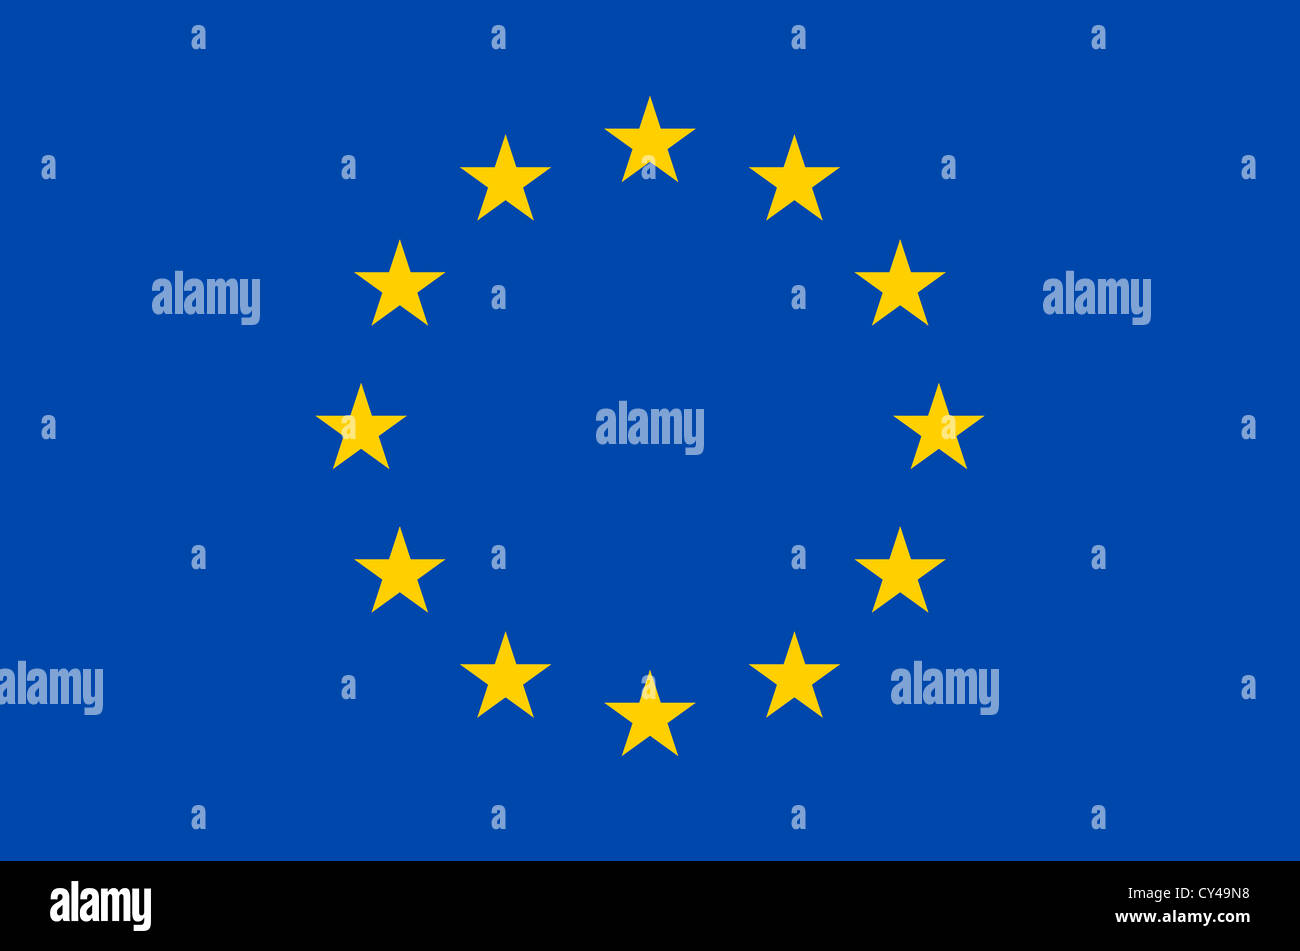 Flag and Symbol of the European Union. - Stock Image